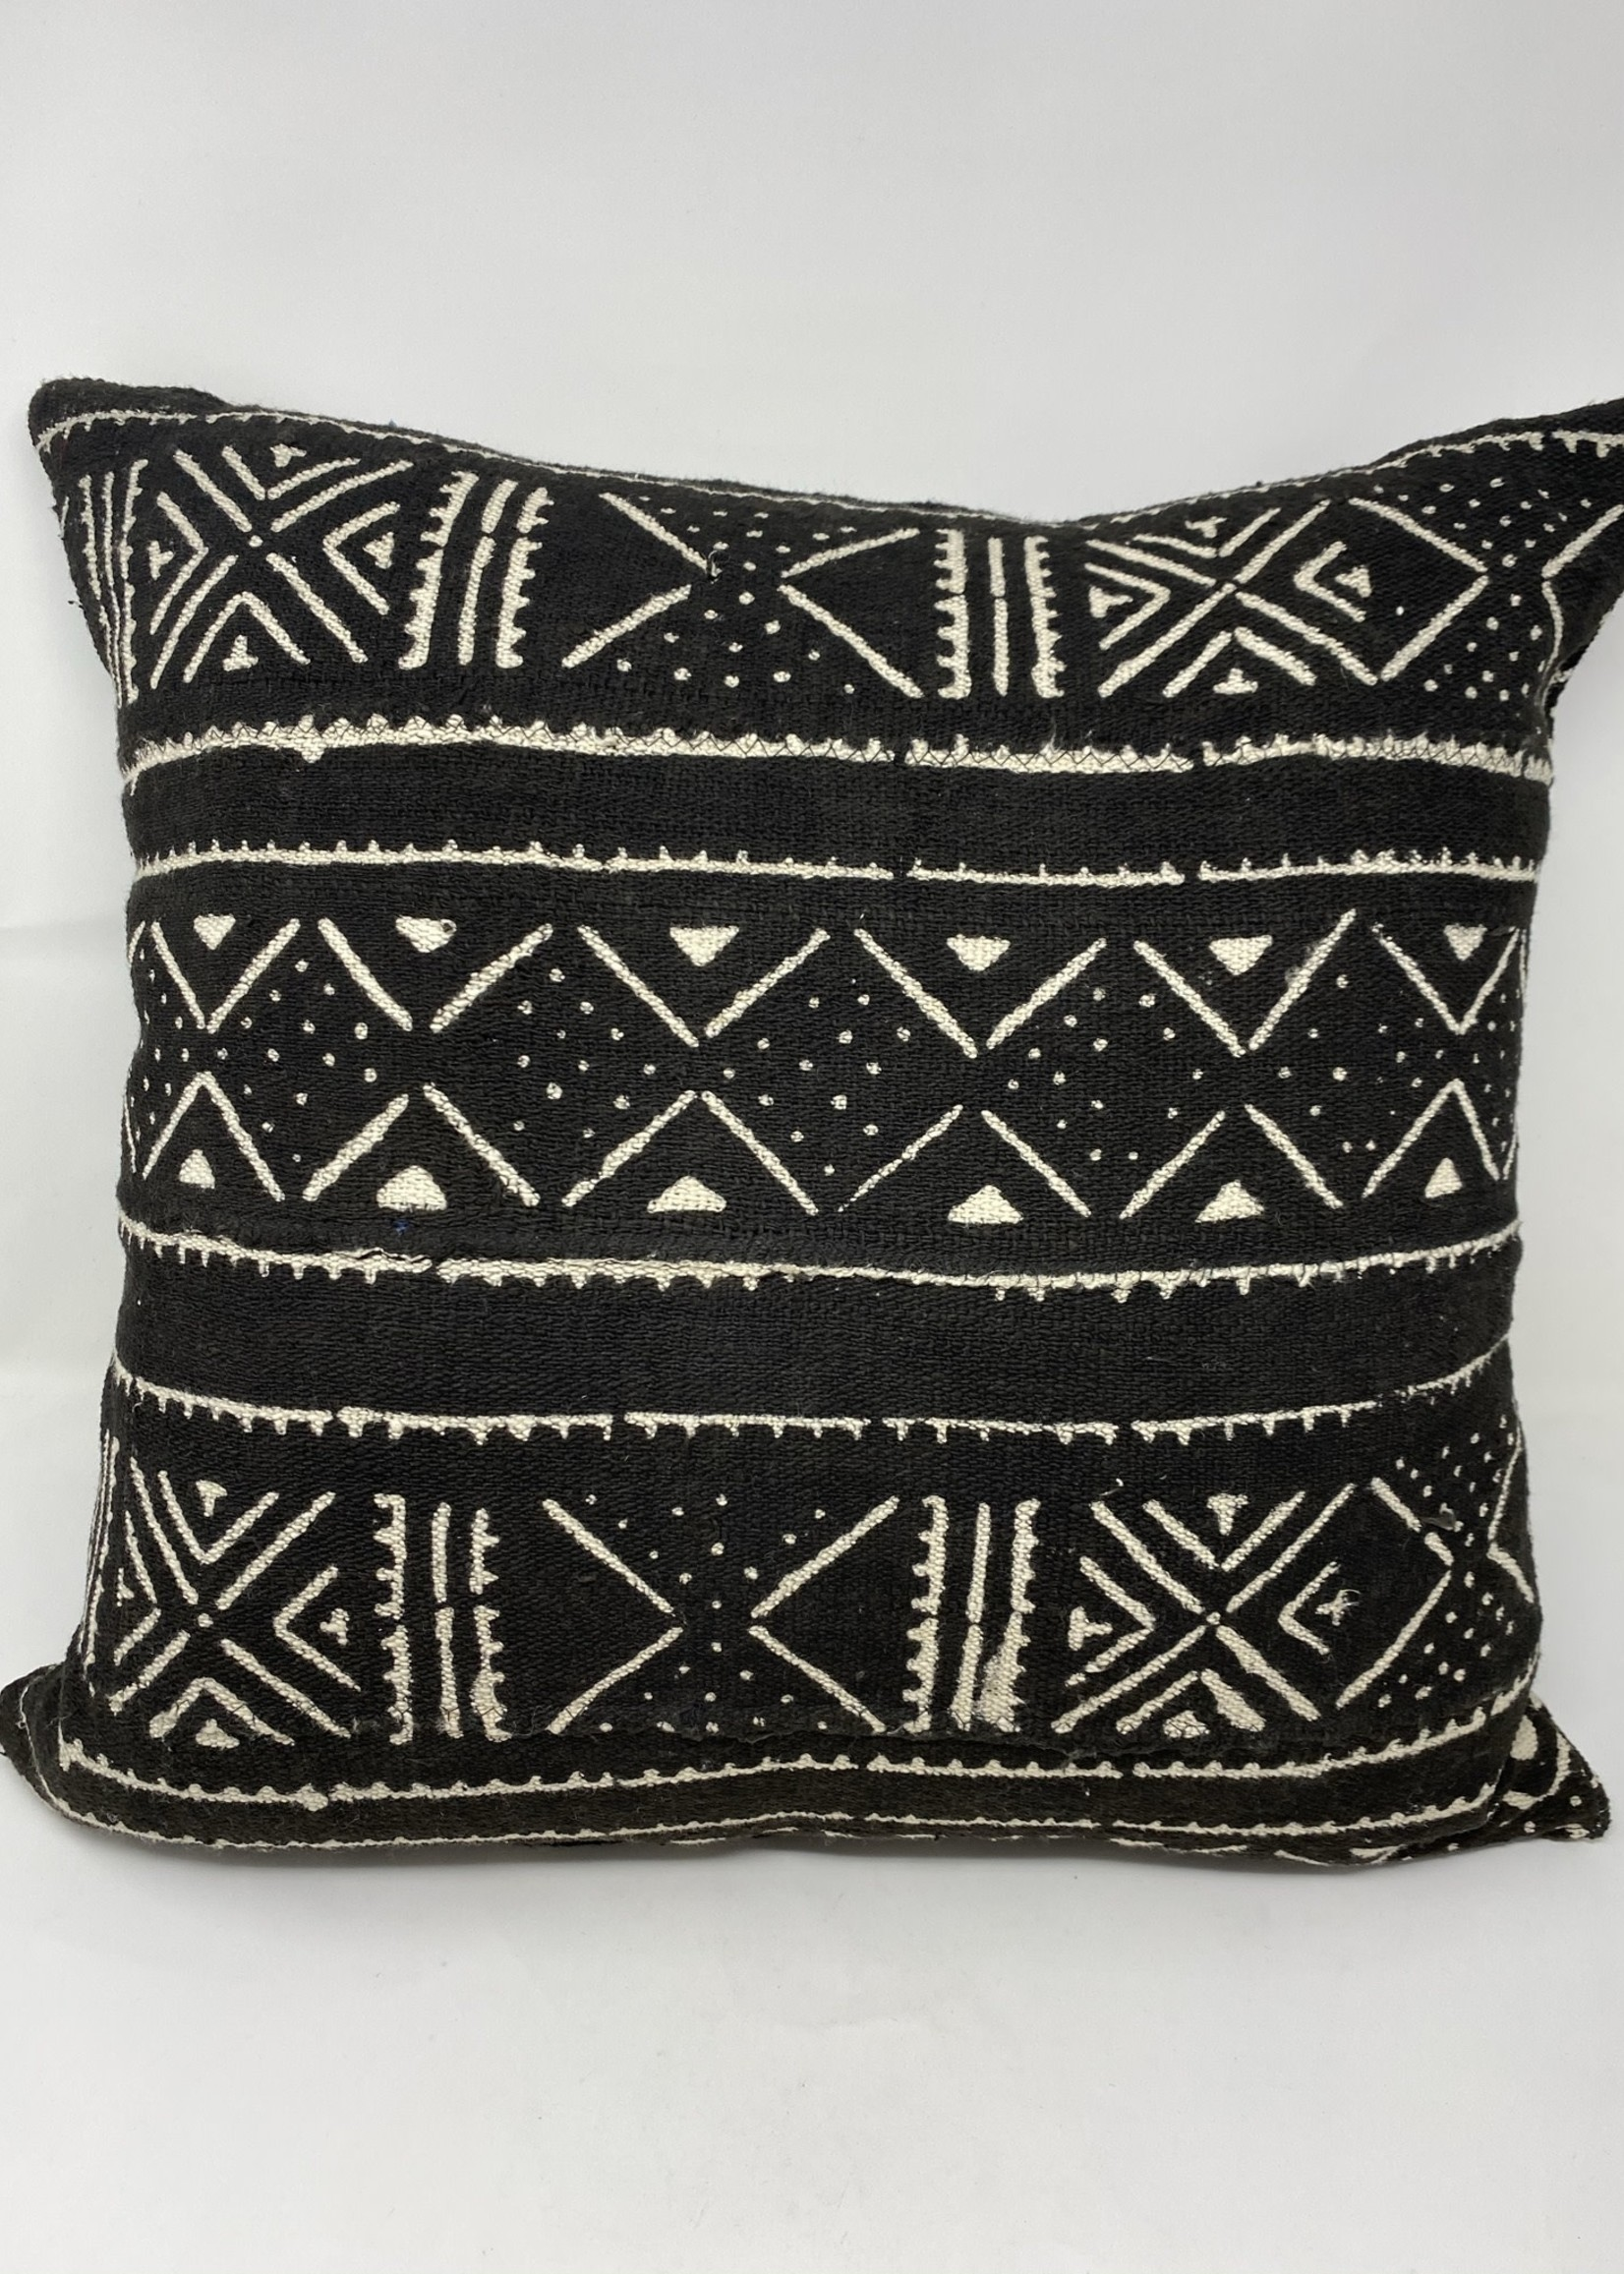 SKC MUDCLOTH THROW PILLOW (Double sided)